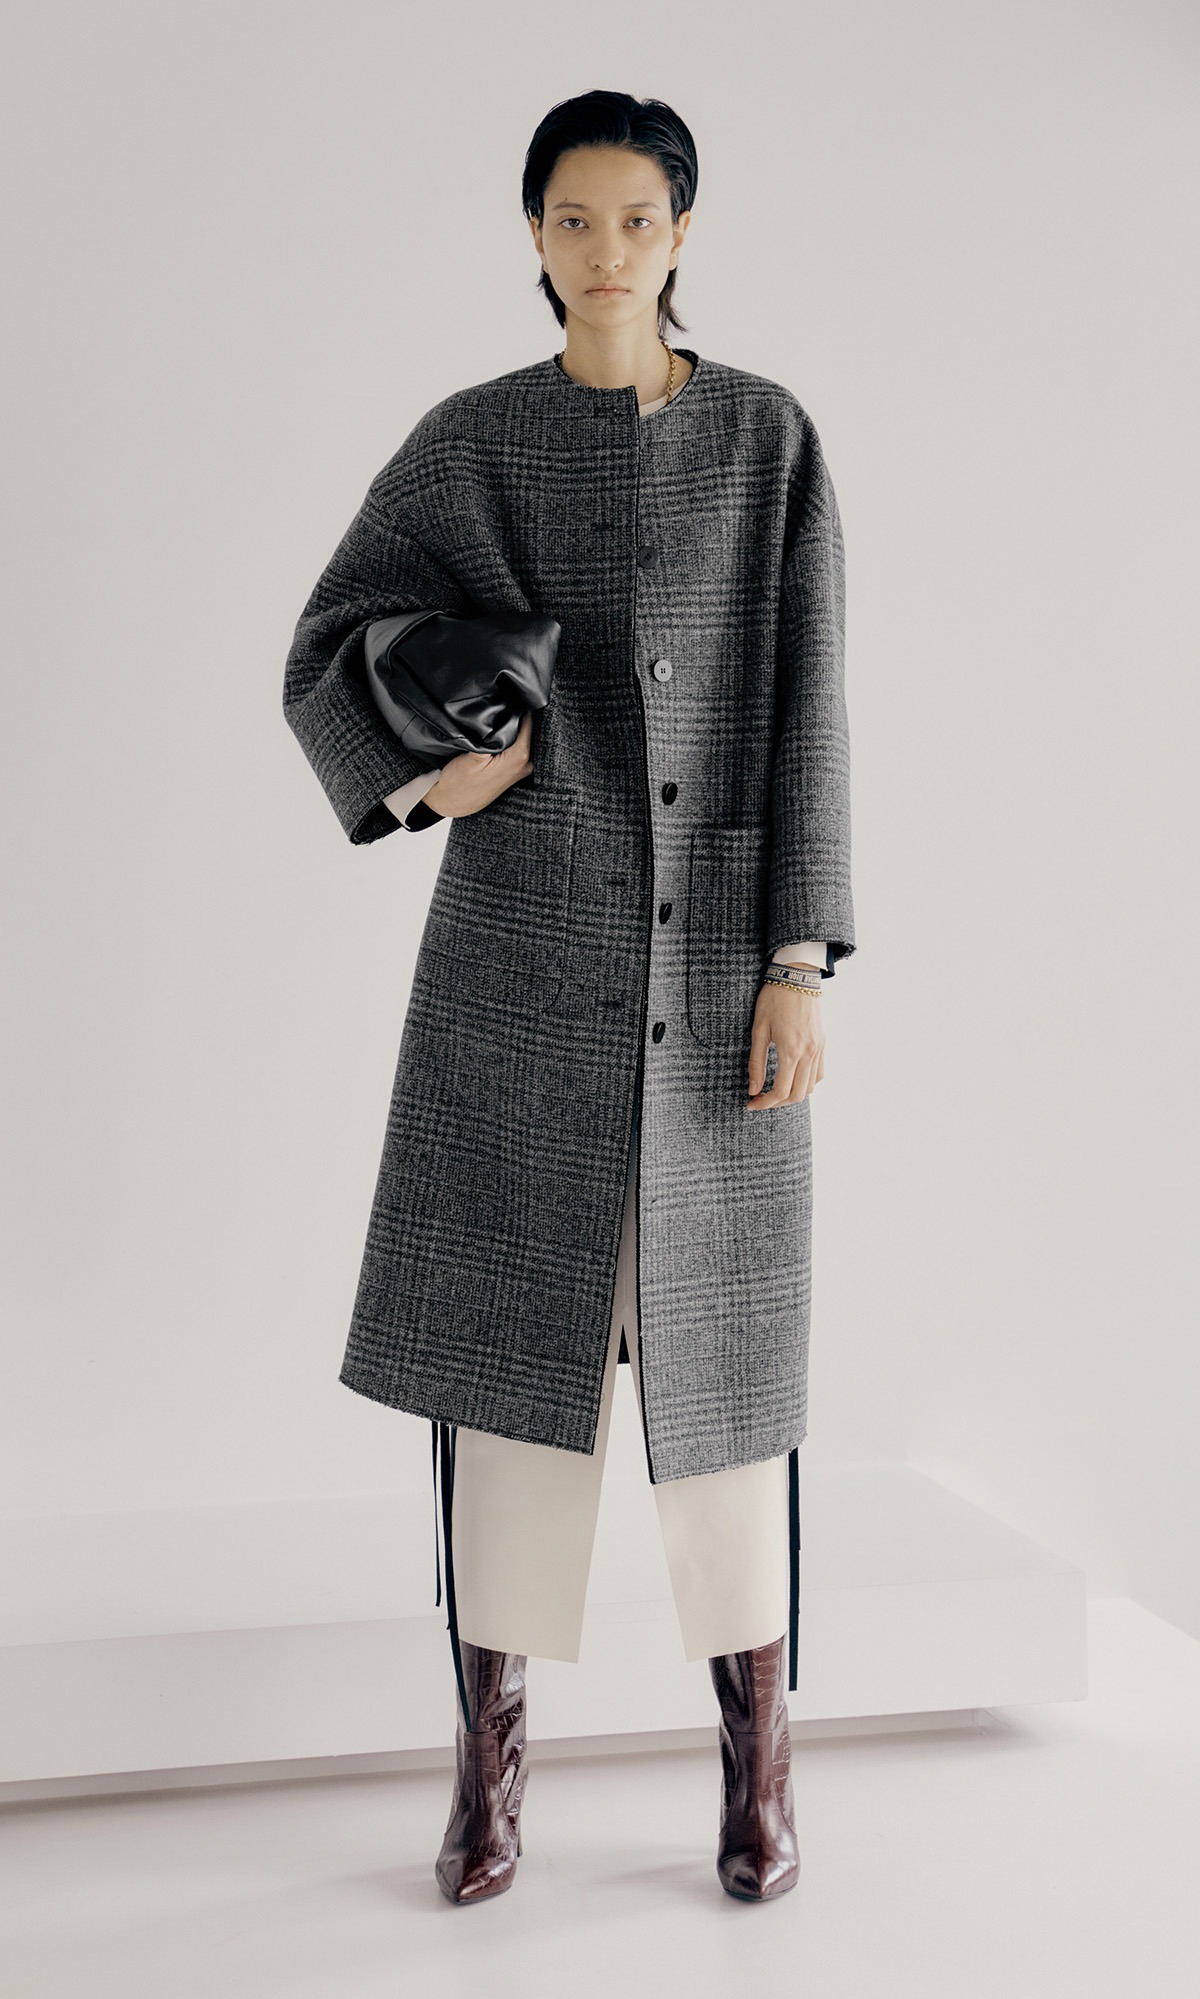 Bring Fur Coat_Black Check (Pre-Order, 9월 29일 순차배송)